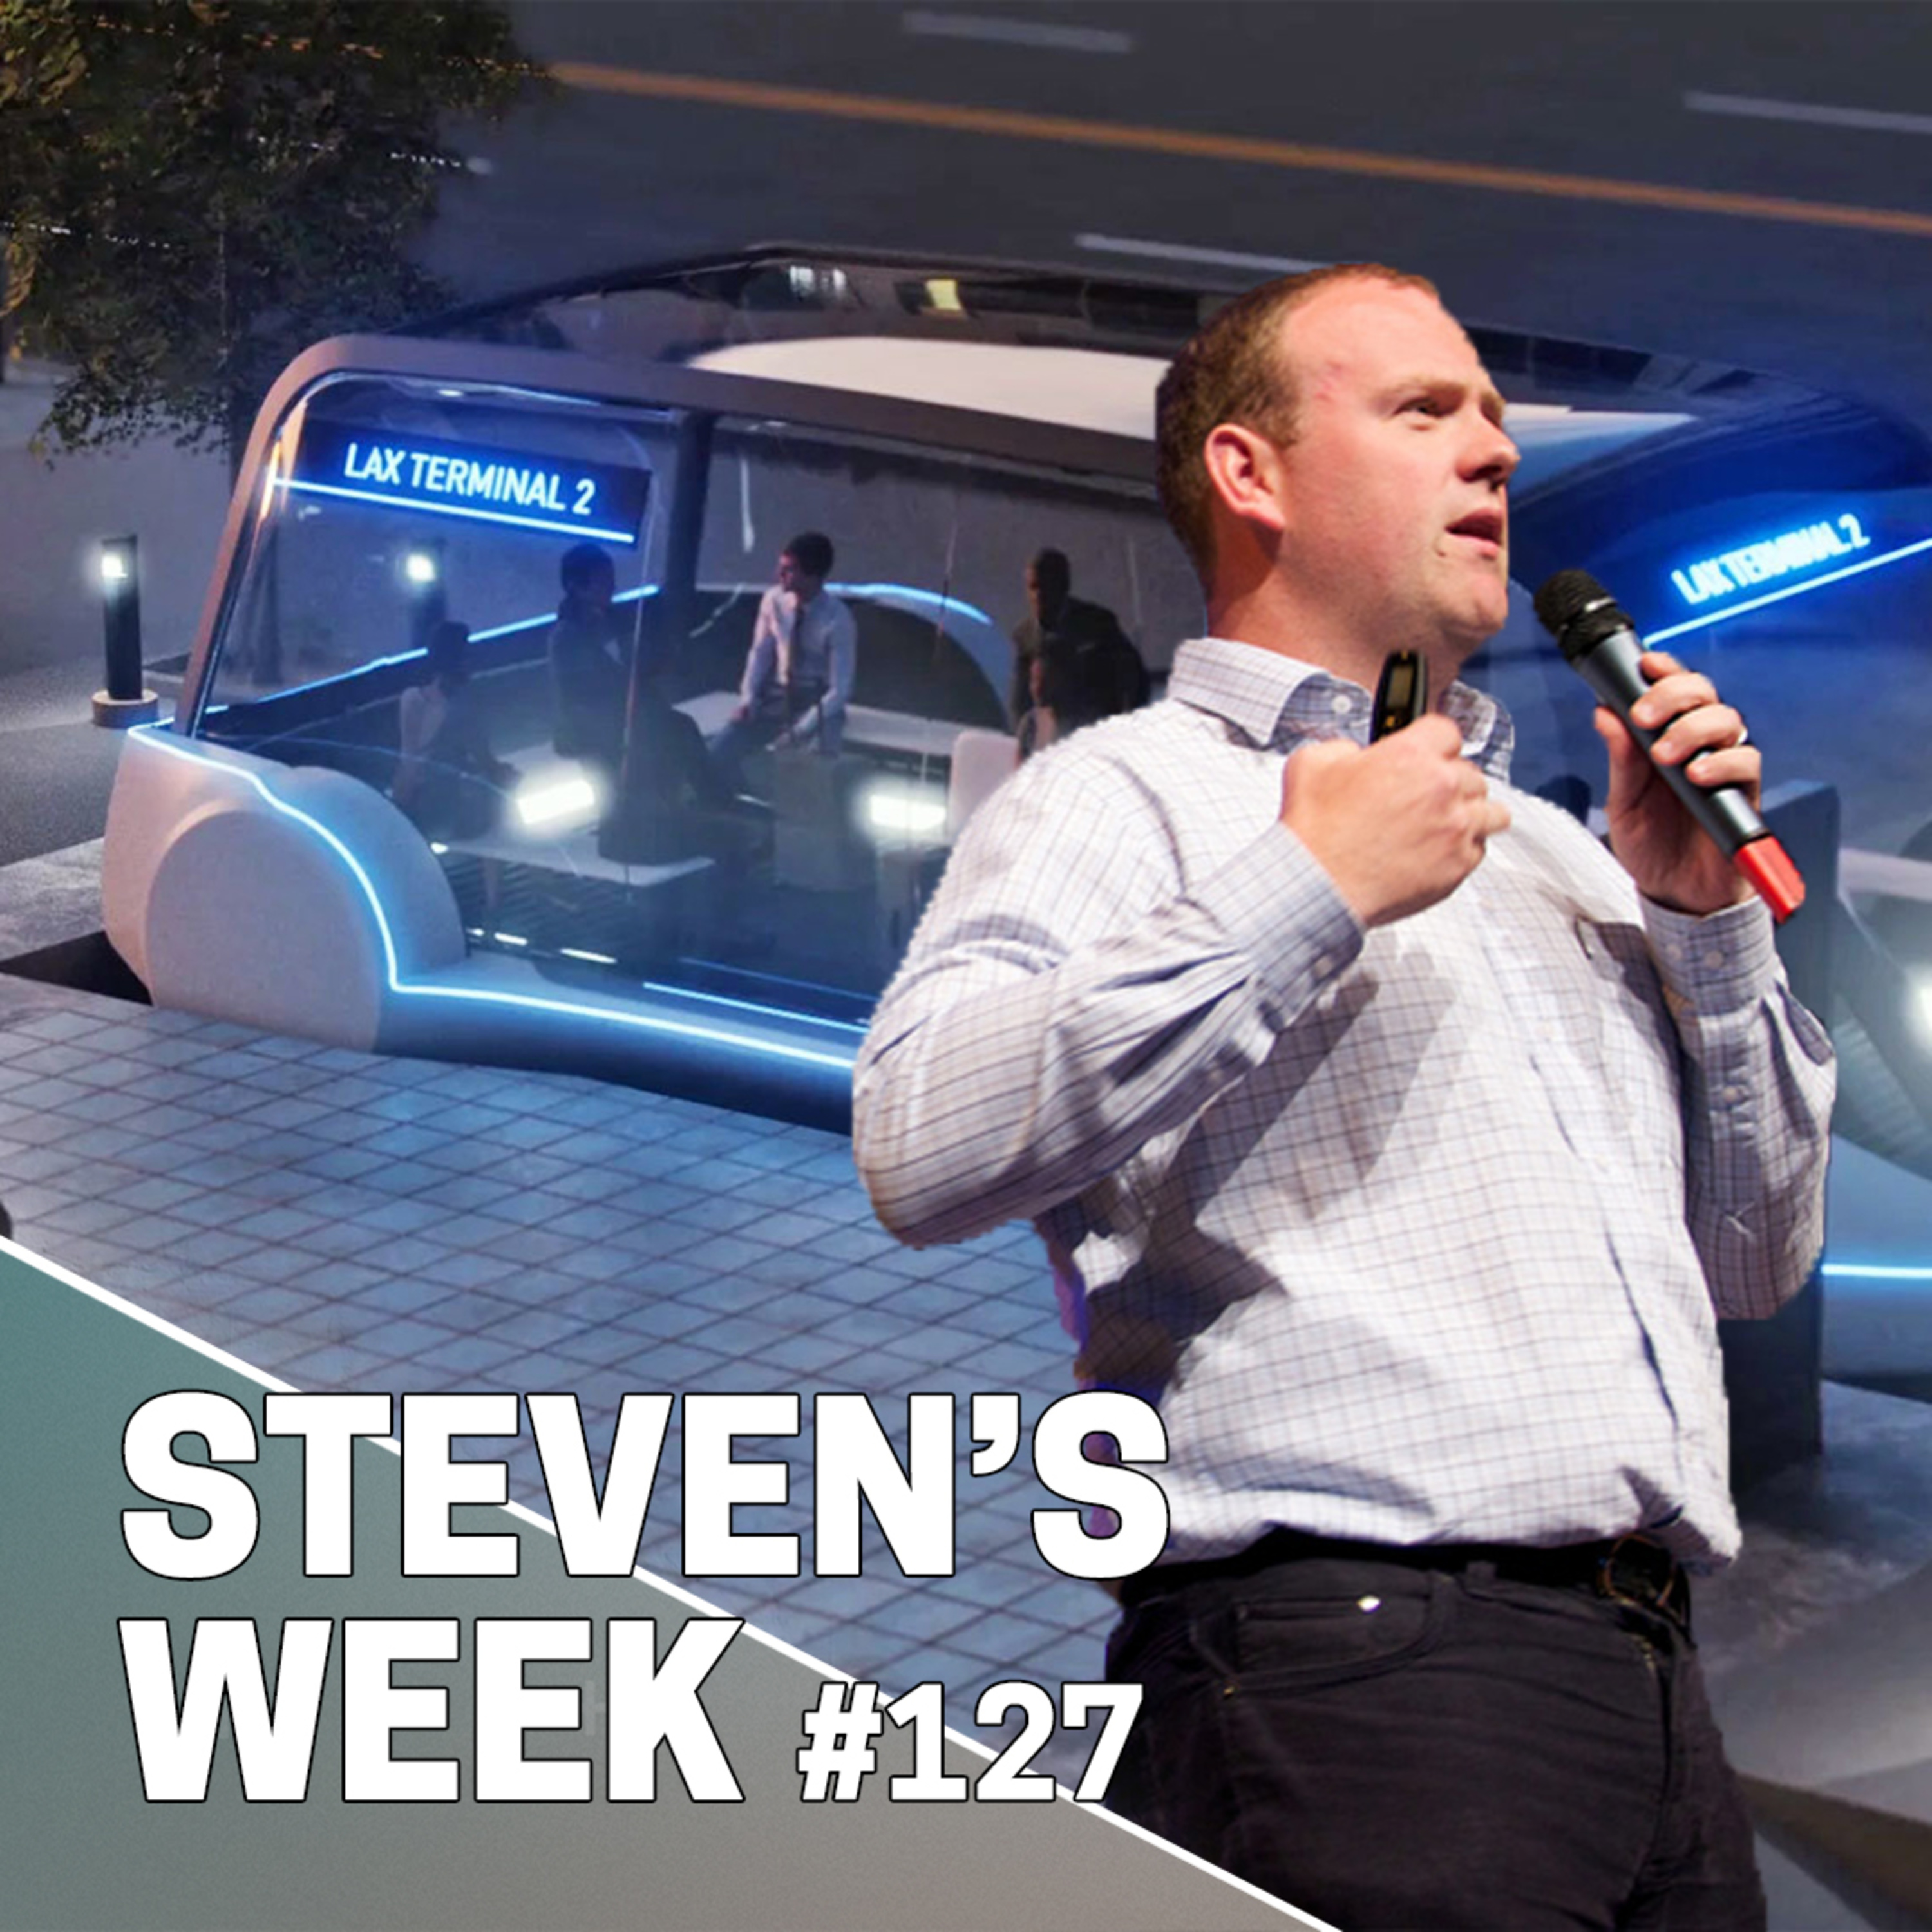 Steven's Week #127: News about Amazon, Deliveroo, ByteDance & The Boring Company